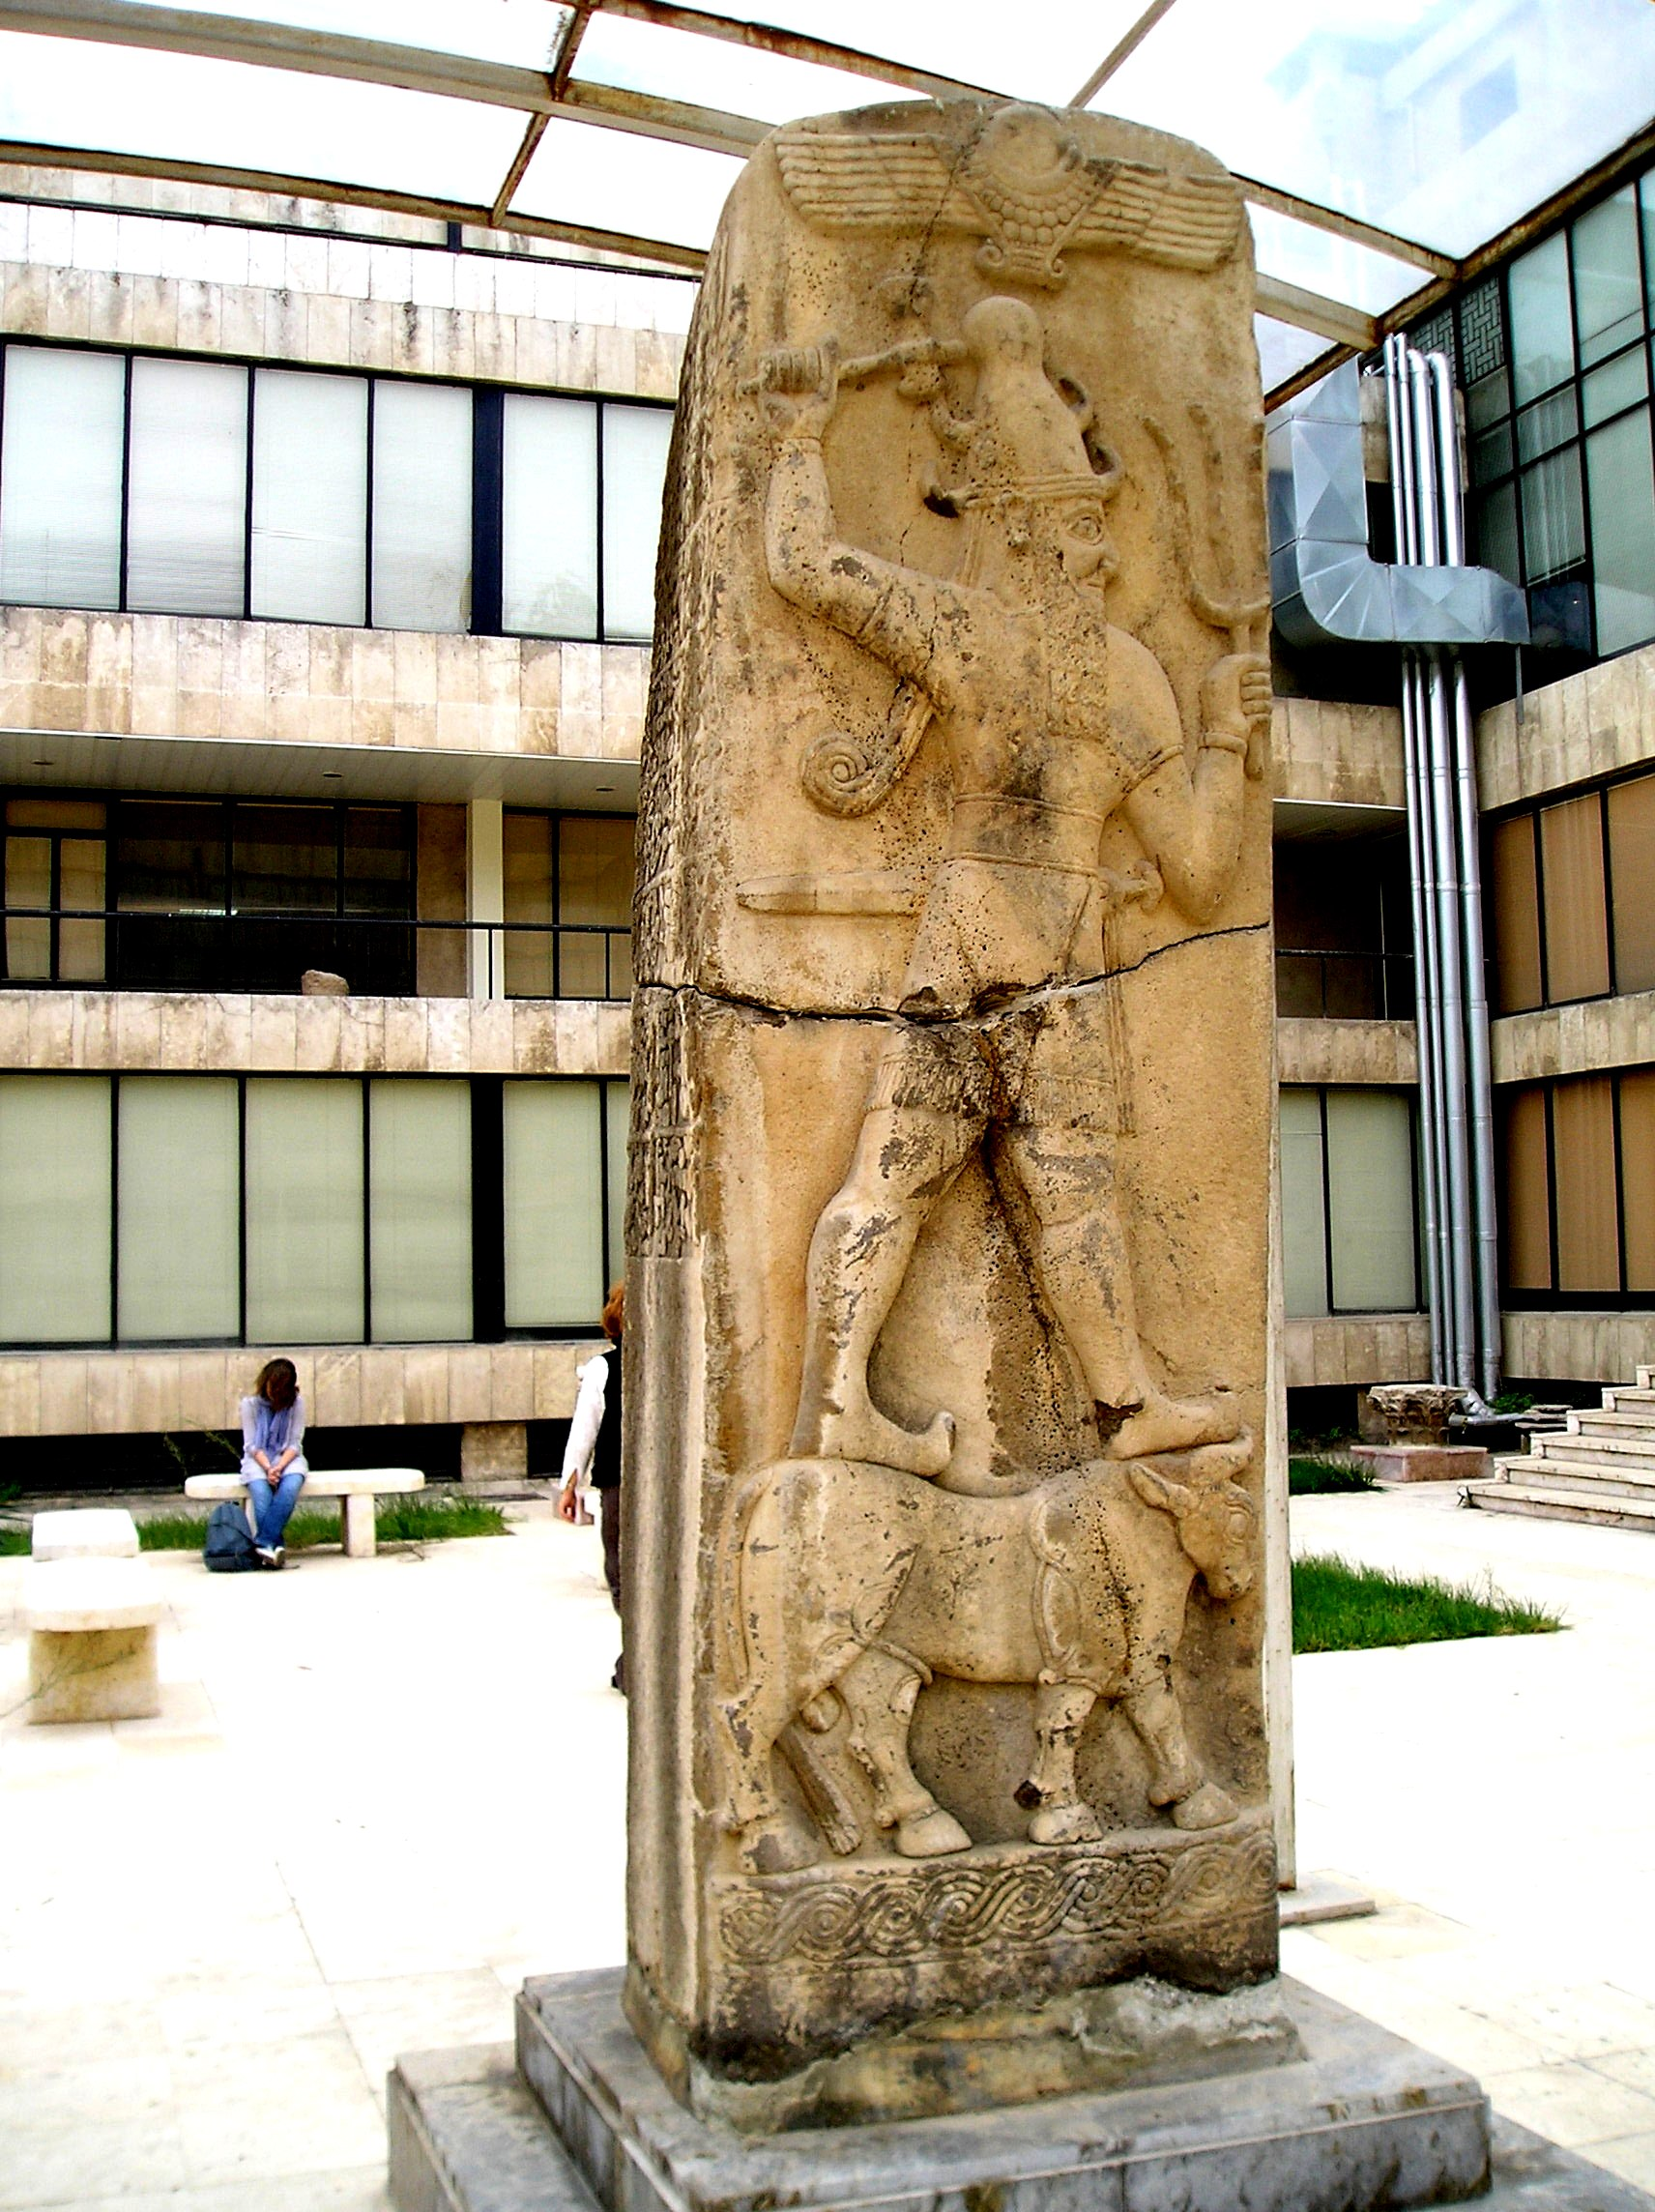 1b - Adad holding powerful high-tech alien weapons, giant alien god of thunder, Enlil's 3rd son, born on Earth Colony, younger brother to Ninurta & Nannar, in the beginning he was the canal controller, Anunnaki King of Heaven & Earth Colony, Anu, his daughter Shala is aunt & spouse to Adad, Adad had sex with the daughters of men, producing giant mixed-breed offspring made into kings, King Ur-Ningirsu & King Amar-Suen